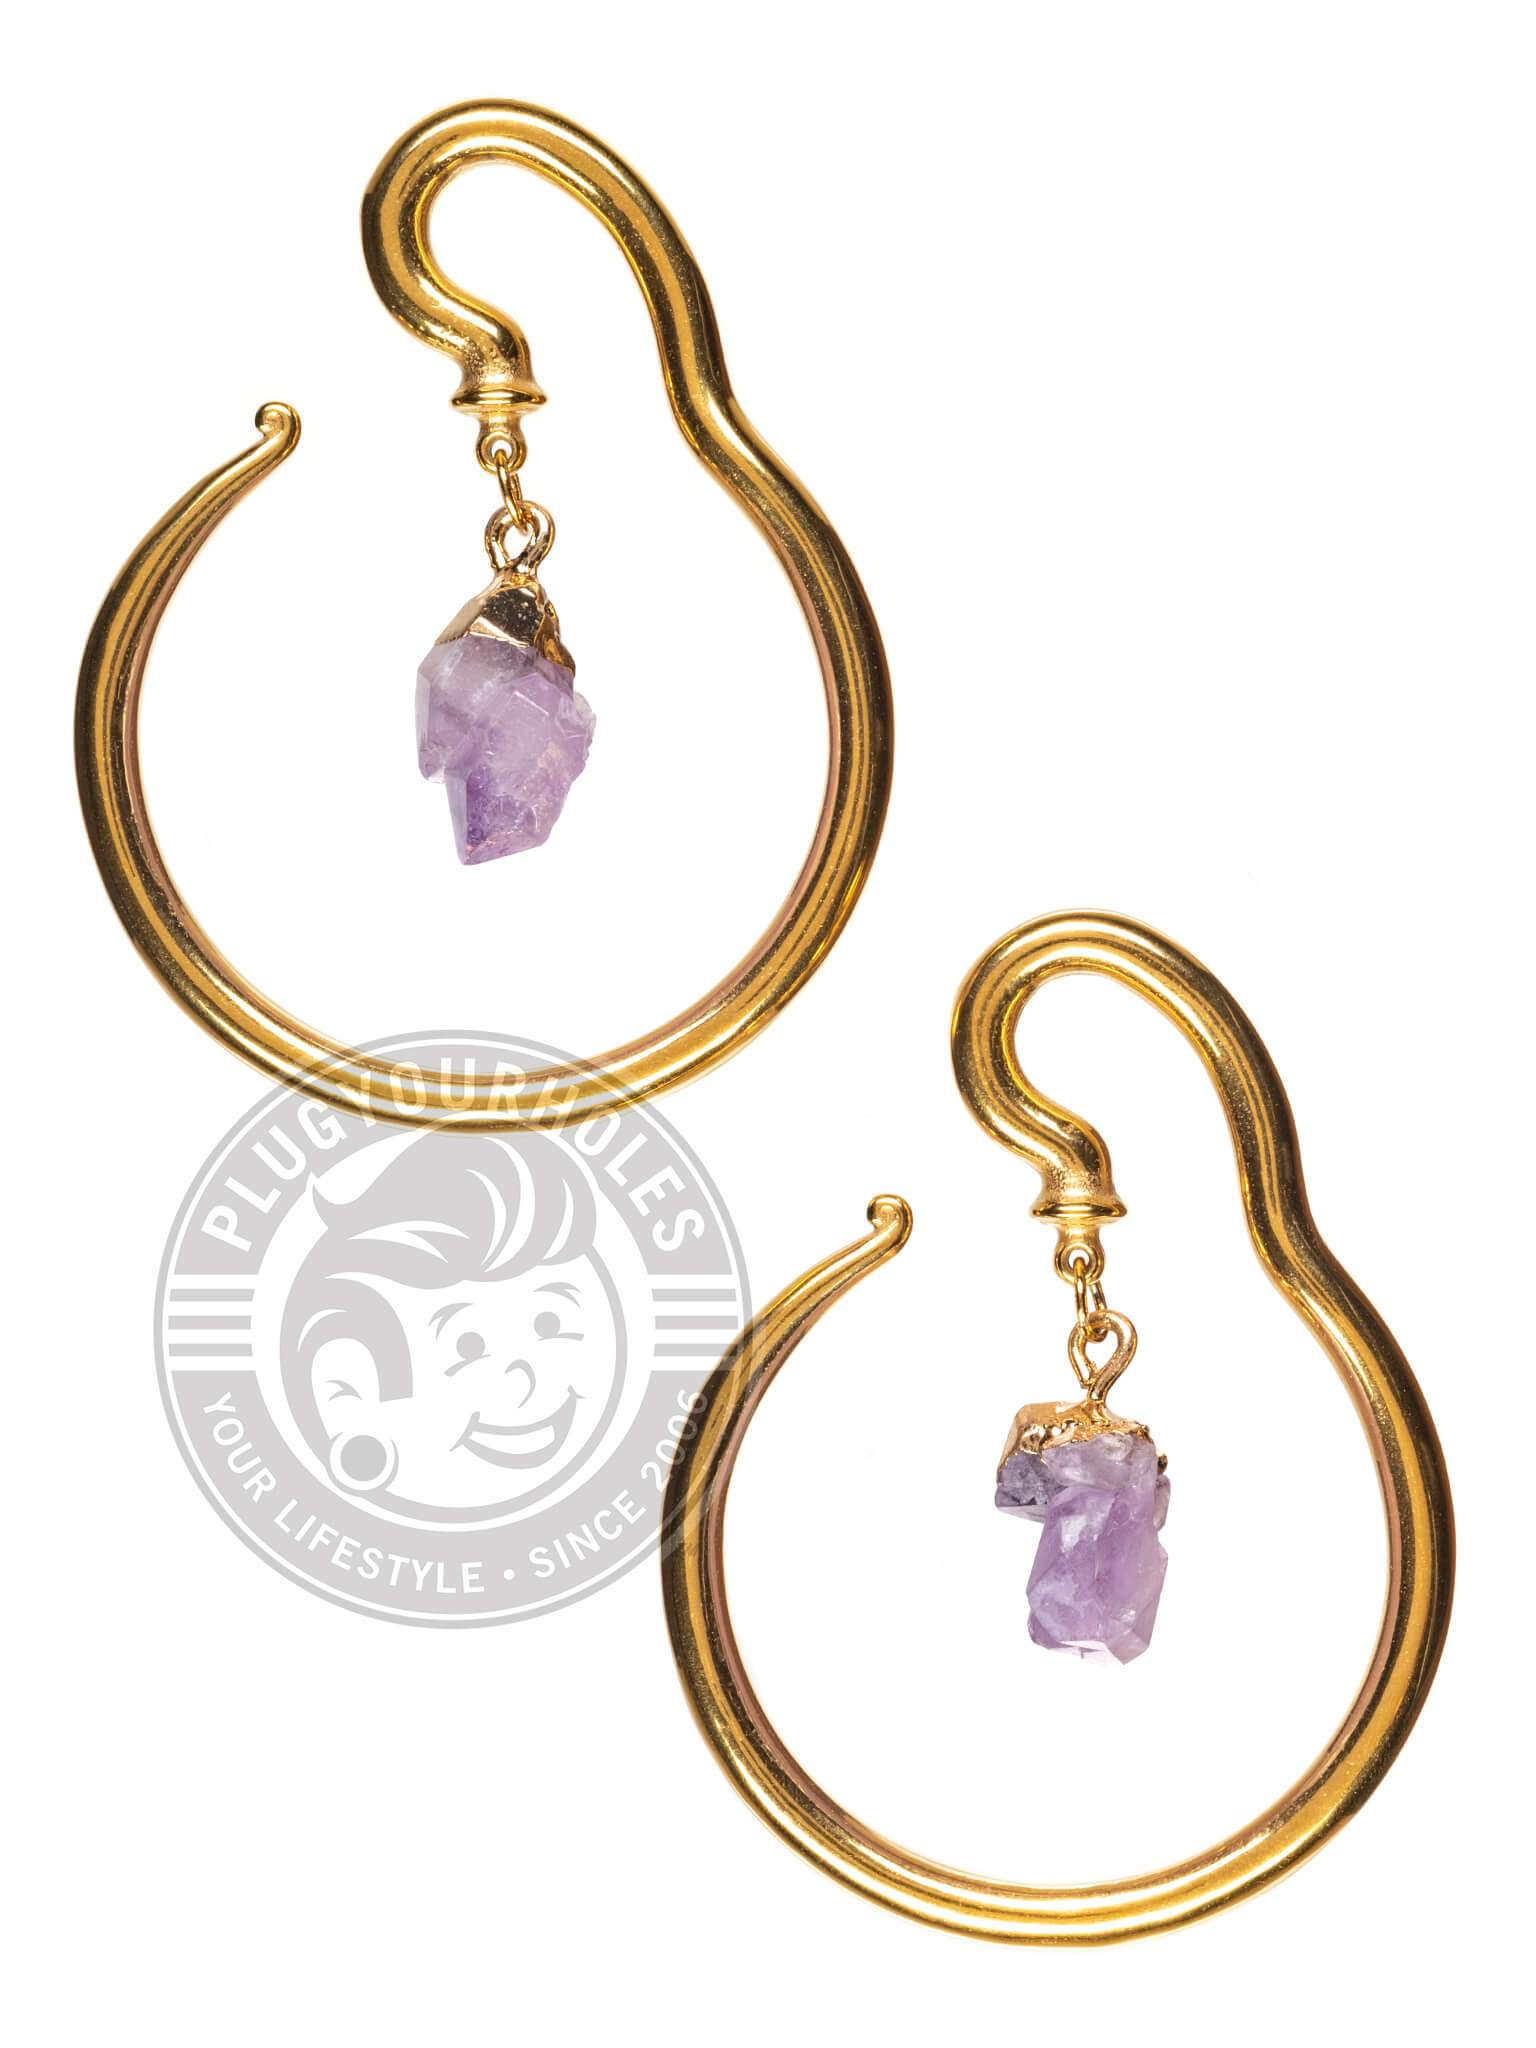 Gold Thin Hook with Amethyst Dangle Steel Hangers